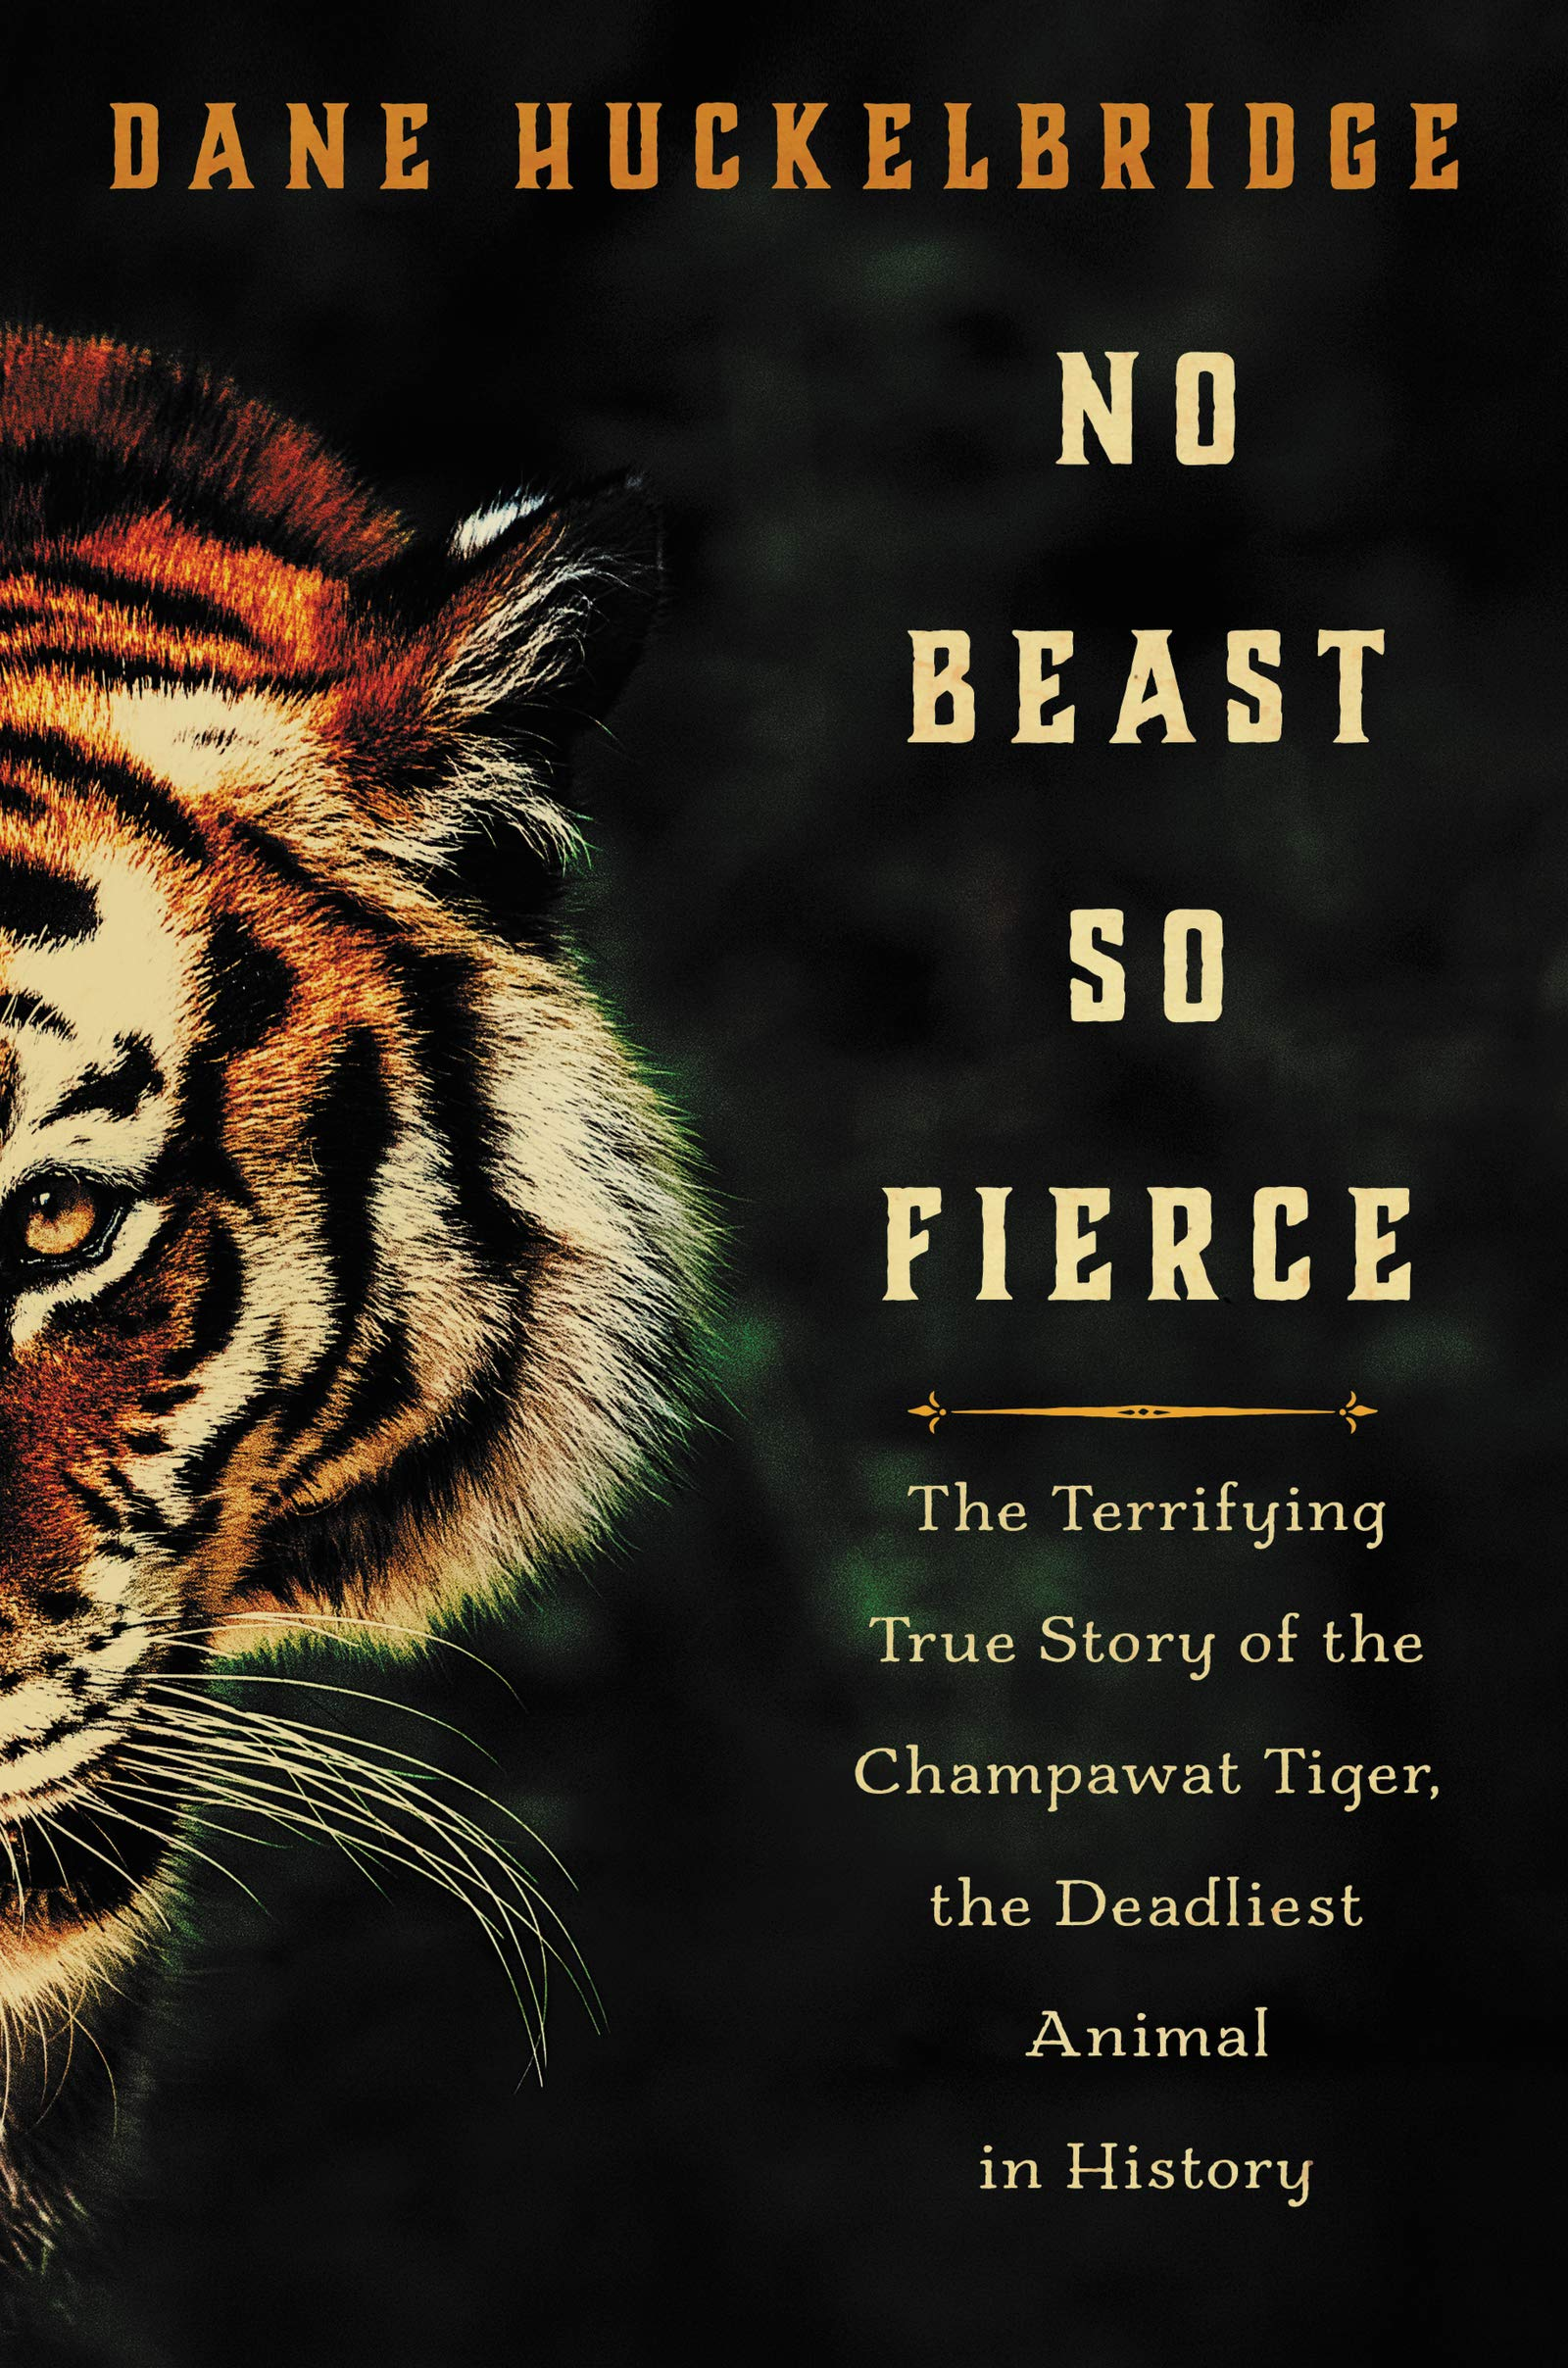 No Beast So Fierce The Terrifying True Story Of How To Build Nocturnal Animals Whisker Champawat Tiger Deadliest Animal In History 9780062678843 Dane Huckelbridge Books